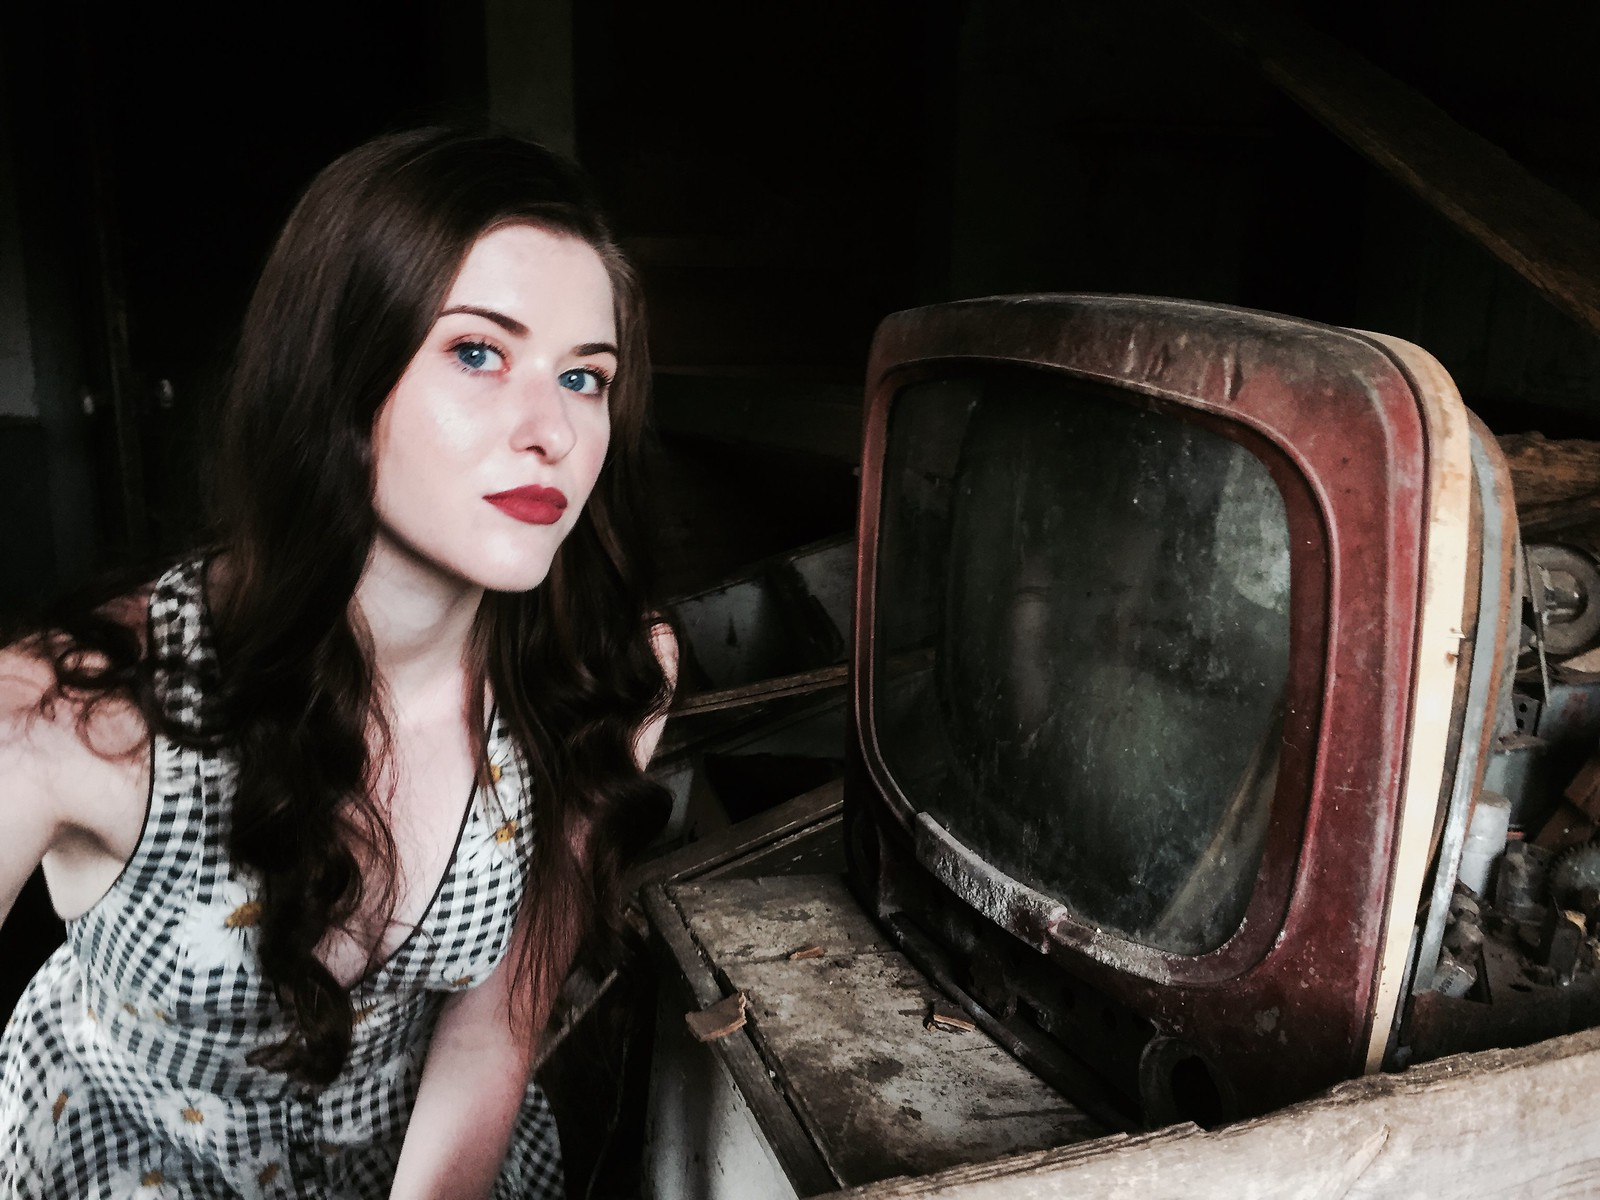 home entertainment was always her wish...(Carly-mercury house) | by Aces & Eights Photography